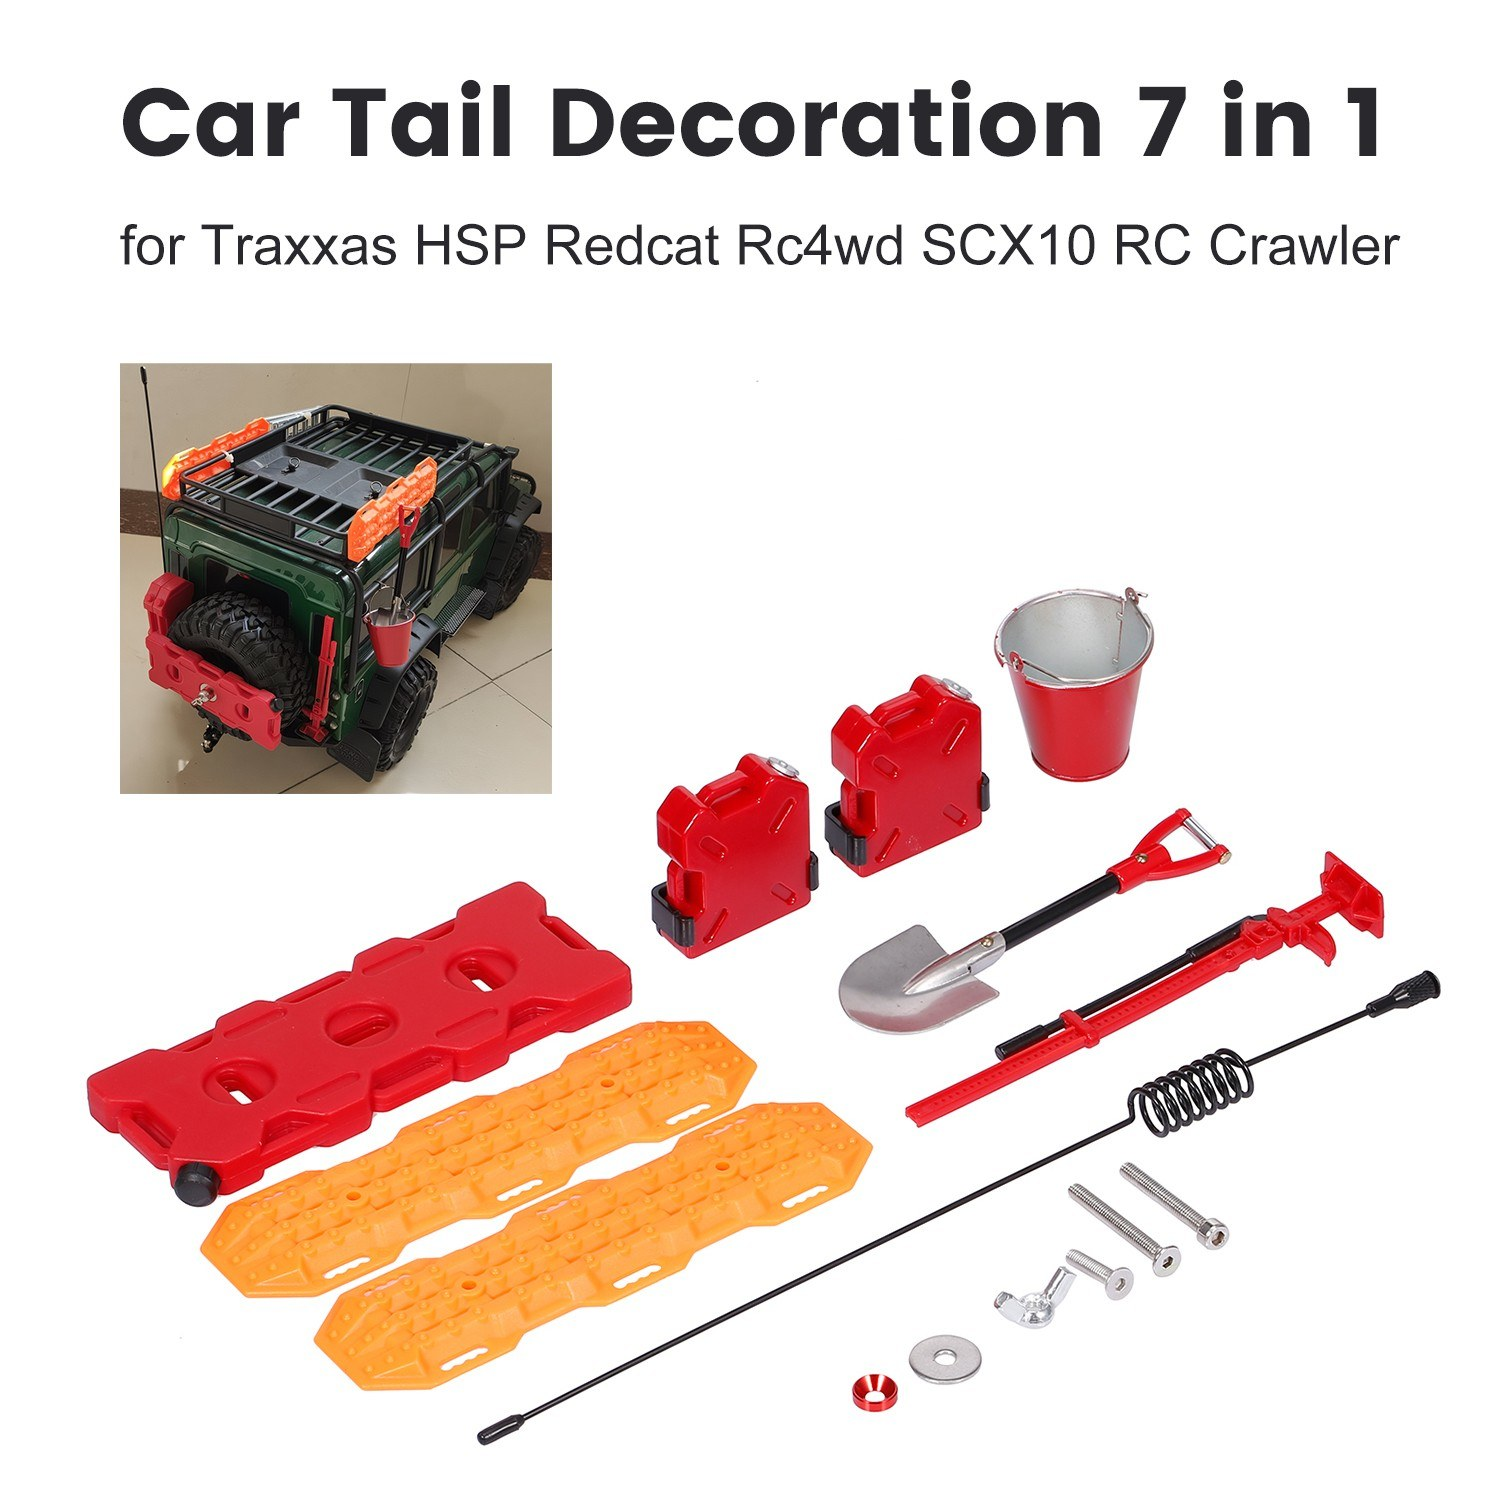 Car Tail Decoration 7 in 1 Self-Help Board Fuel Tank Box Bucket Antenna Fuel Box Shovel Lifting Jack for Traxxas HSP Redcat Rc4wd Tamiya SCX10 RC Crawler